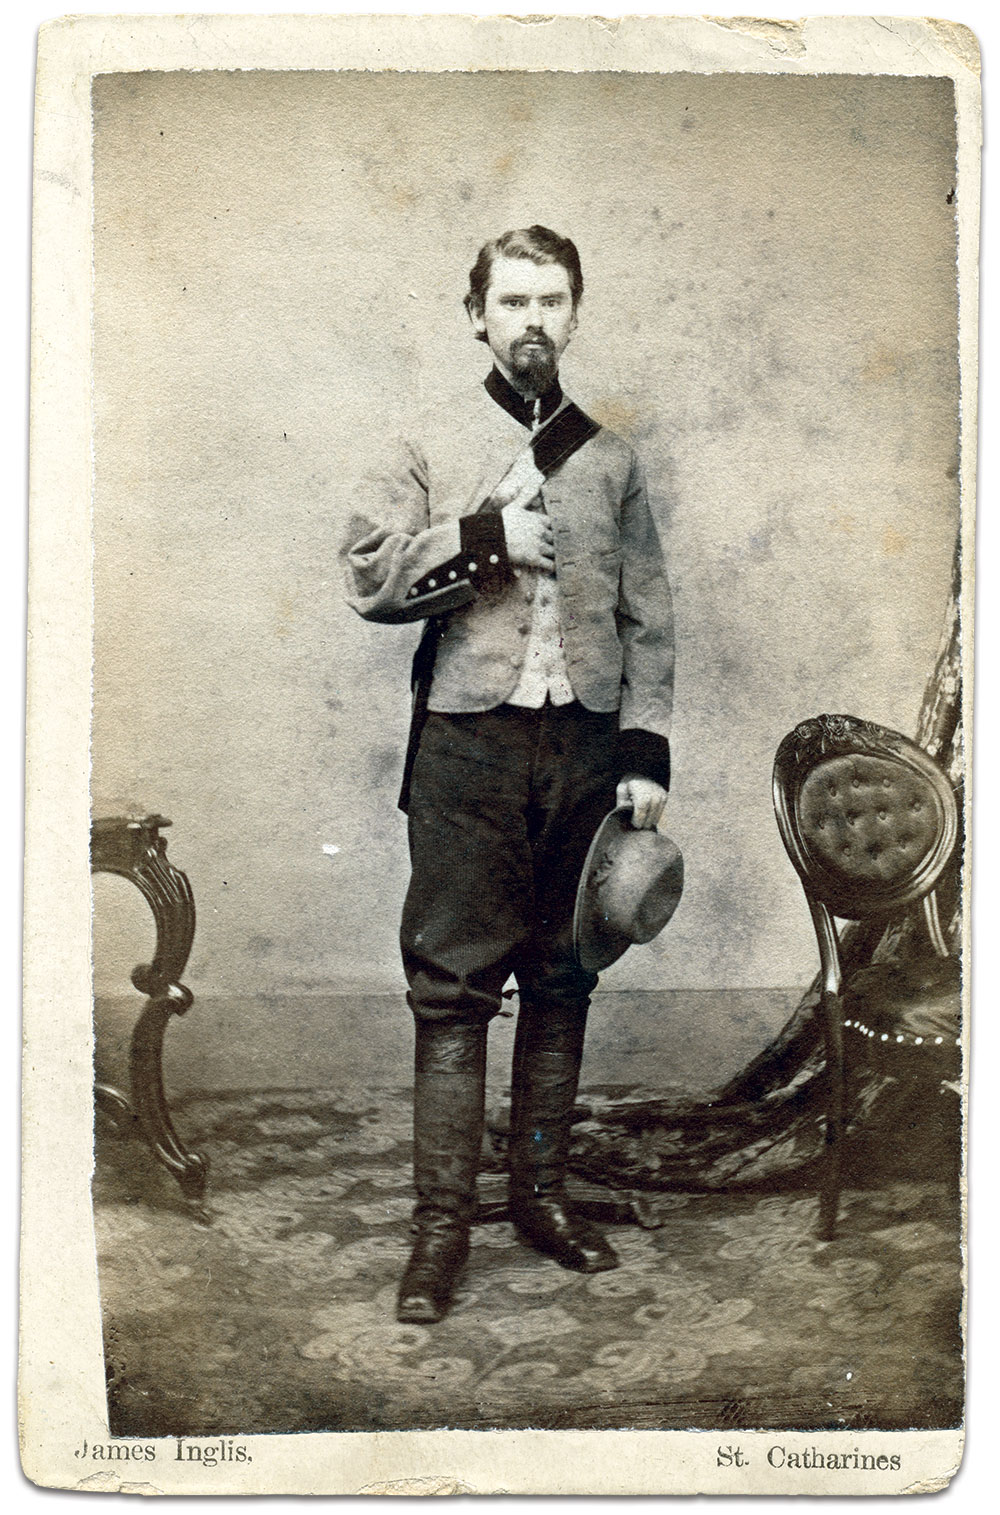 First Sgt. Frederick Beall, Company A, 10th Mississippi Cavalry. Carte de visite by James Inglis of St. Catherines, Ontario. The late William A. Turner Collection.